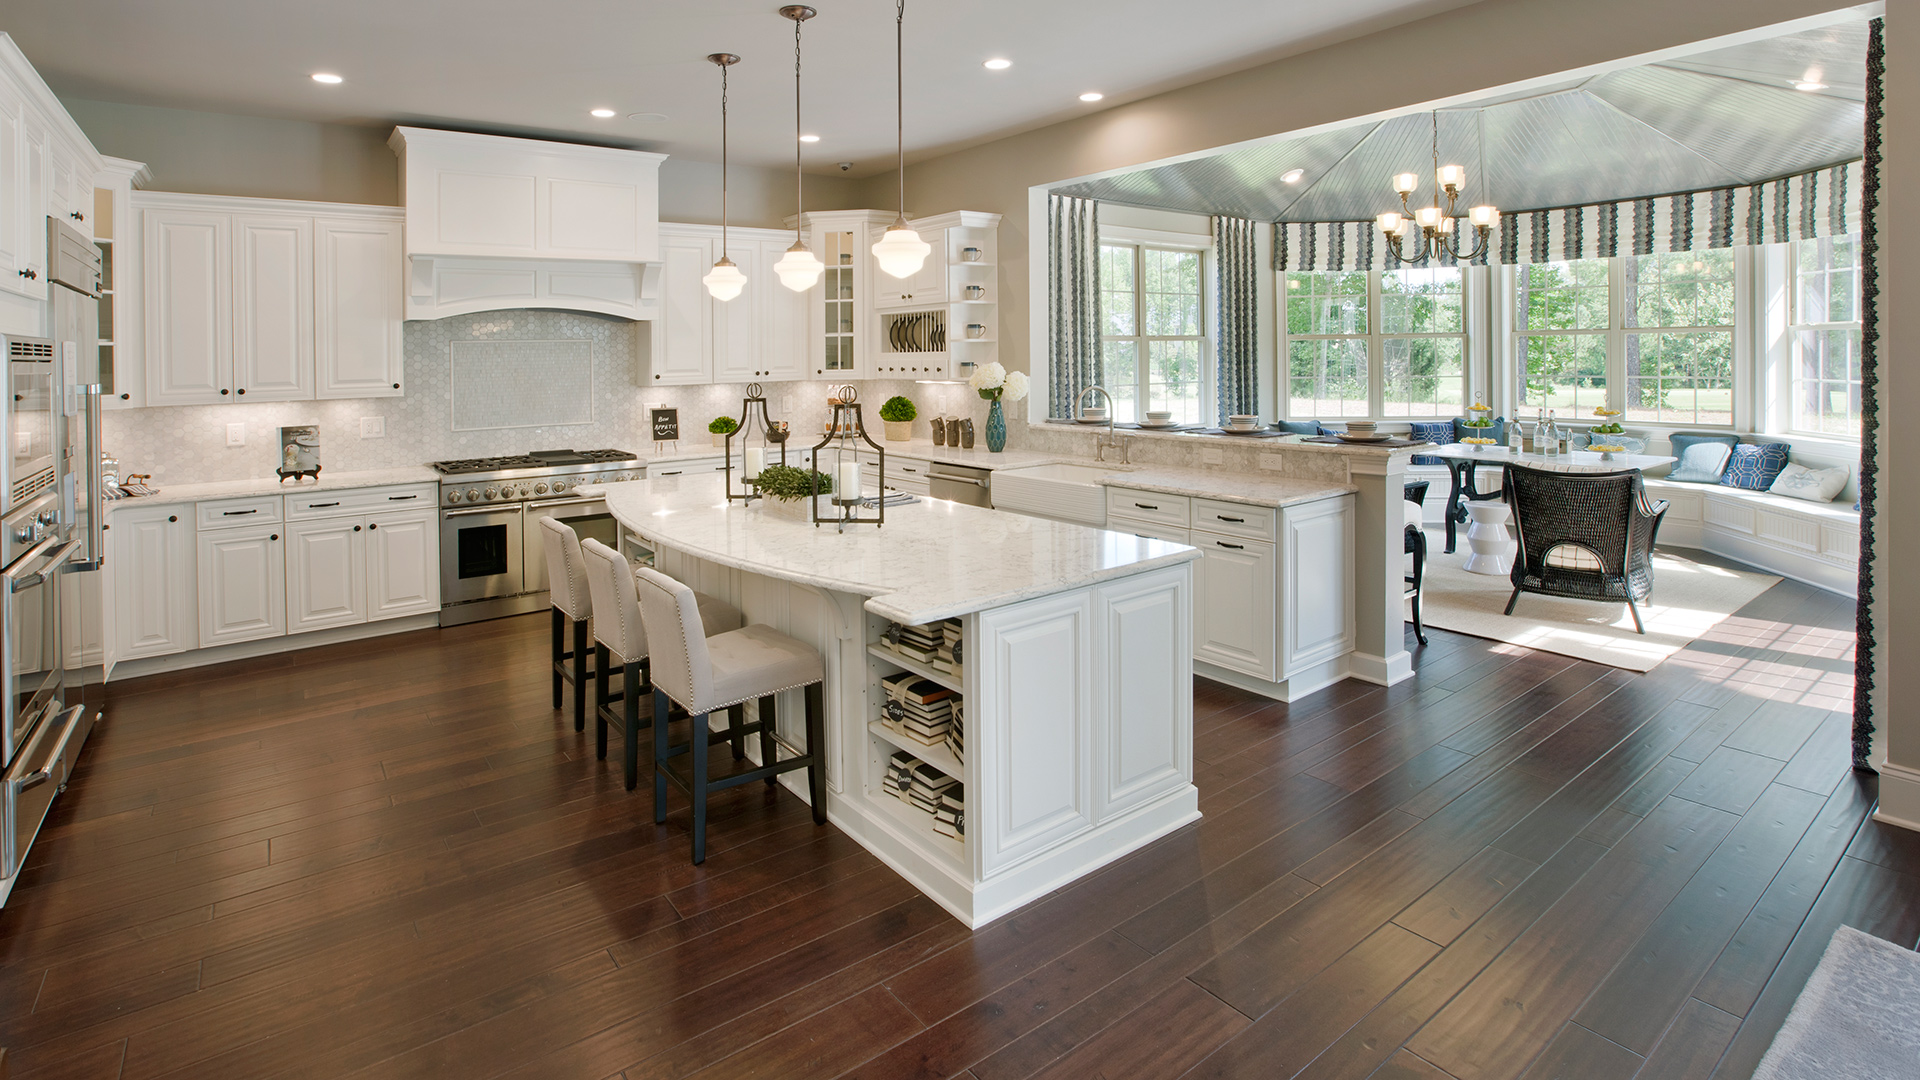 Kitchen Model Of The Hollister Home Design Available In Wake Forest Nc